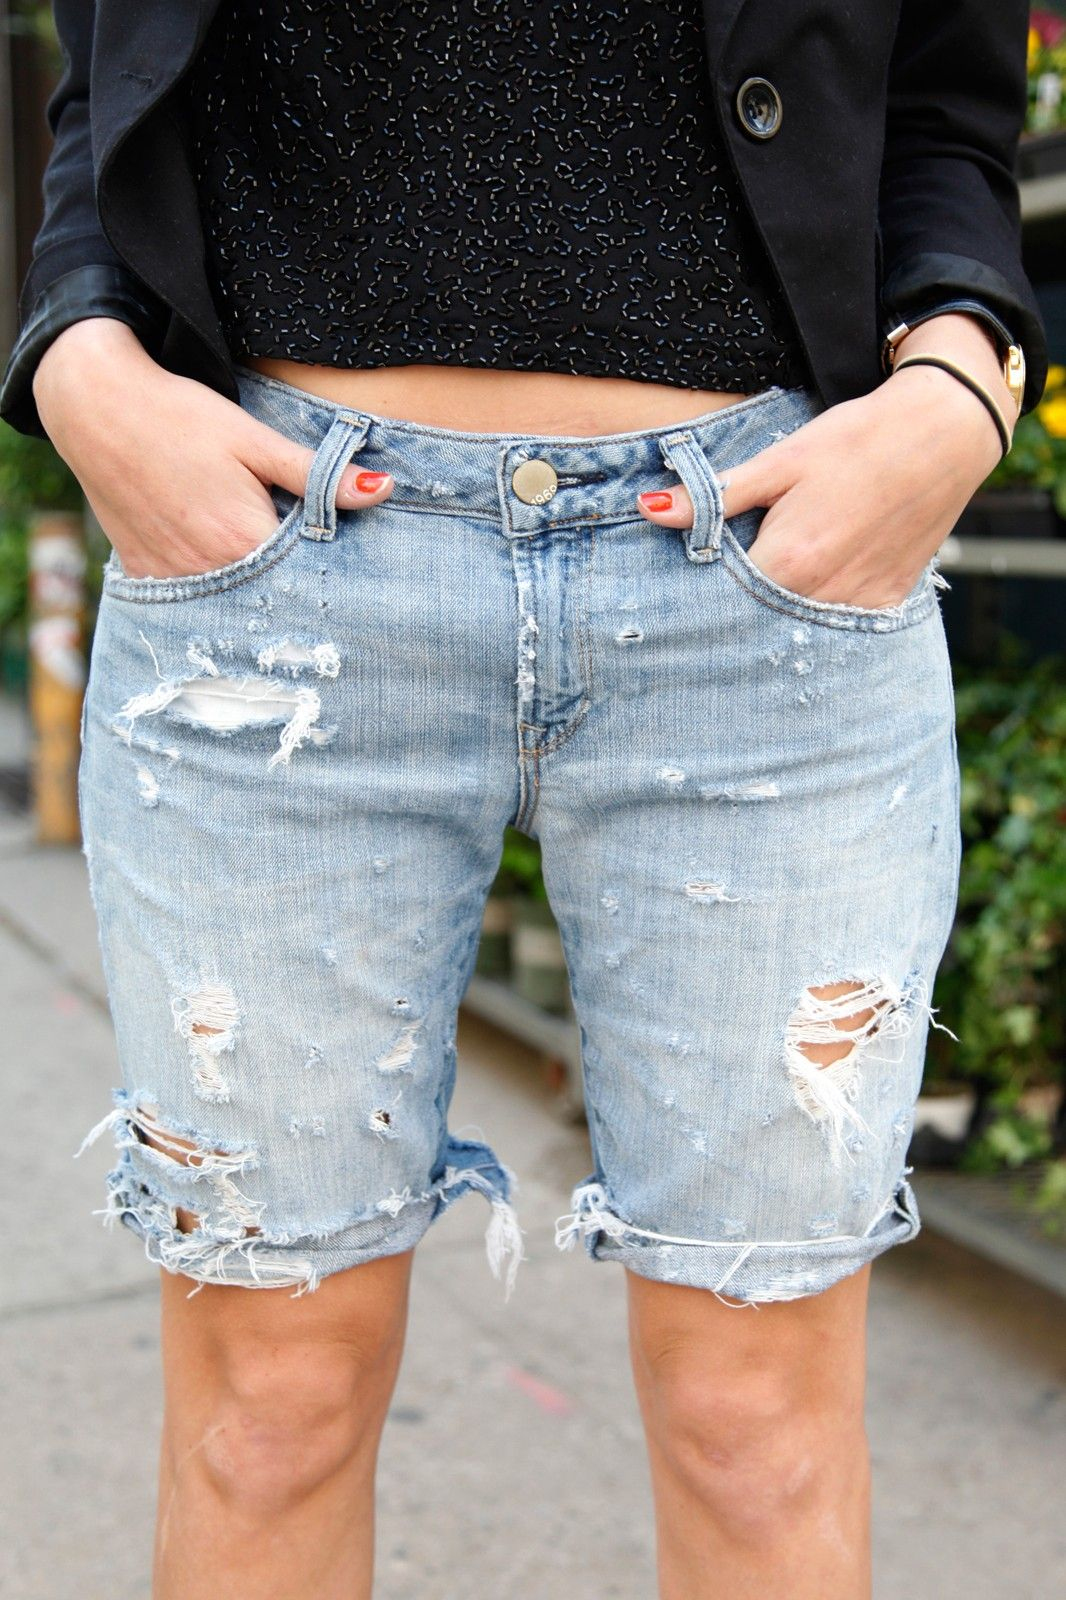 Craft Your Own Effortlessly in 2020 | Diy distressed jeans ...